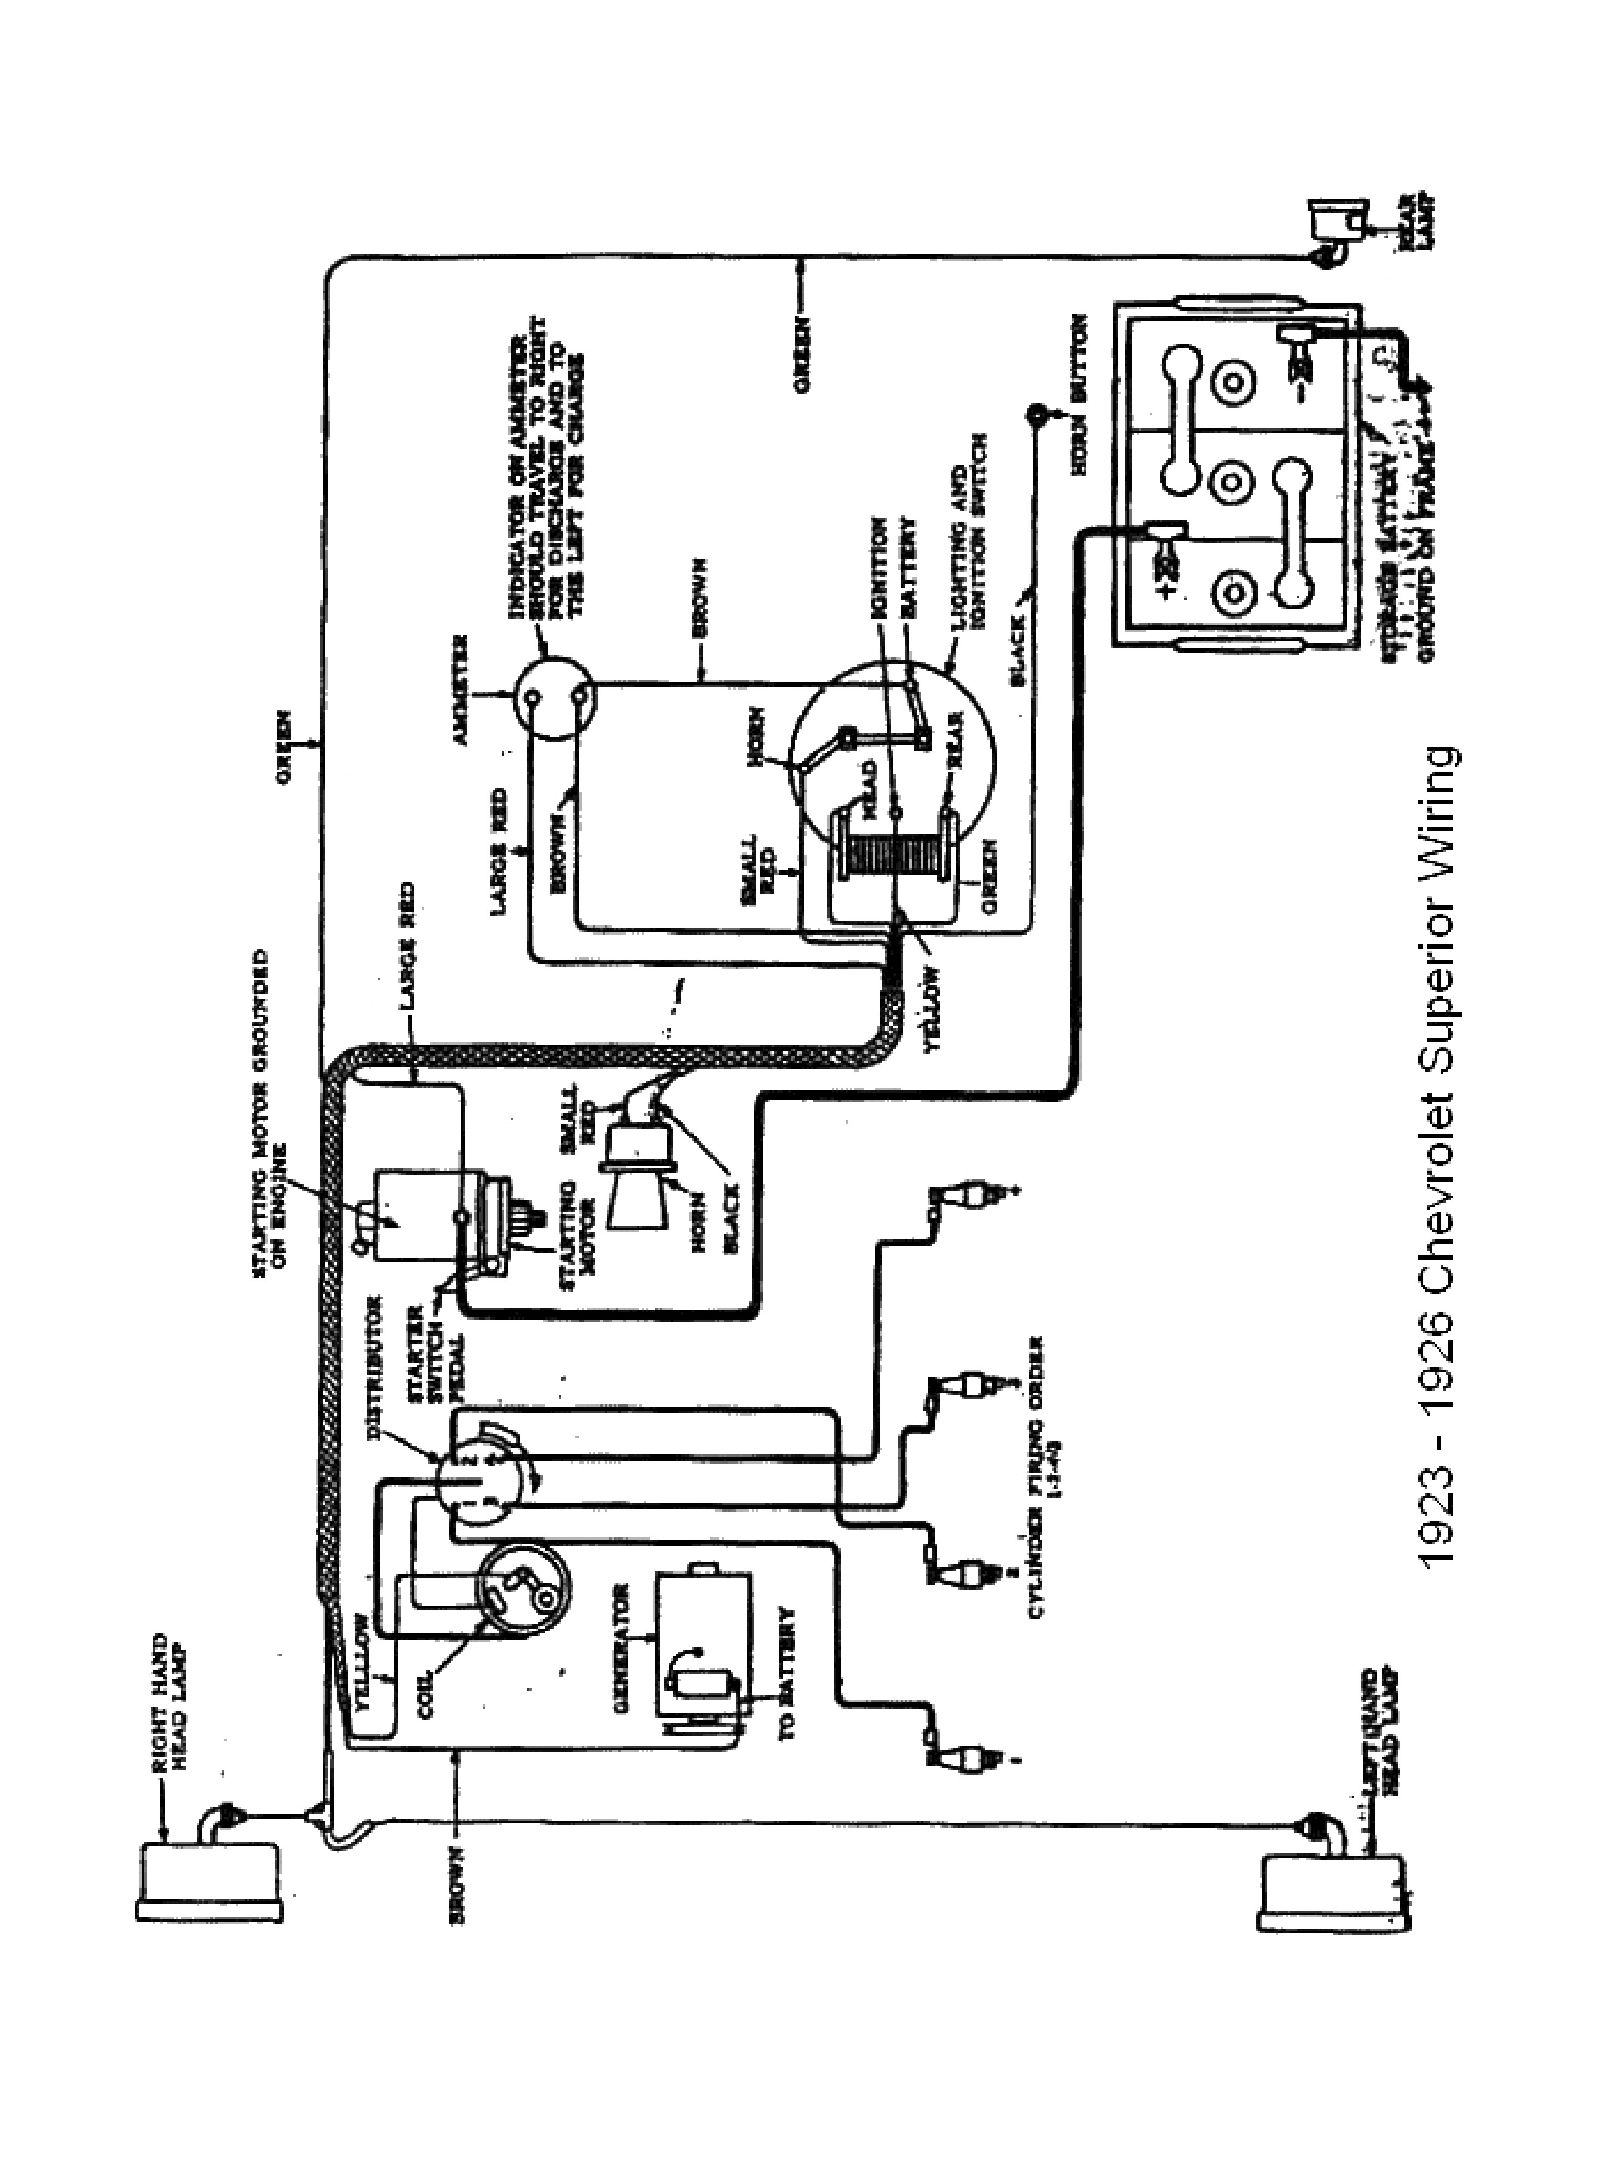 1923 Superior Model ·: 1987 Dodge Distributor Wiring Diagram At Chusao.net